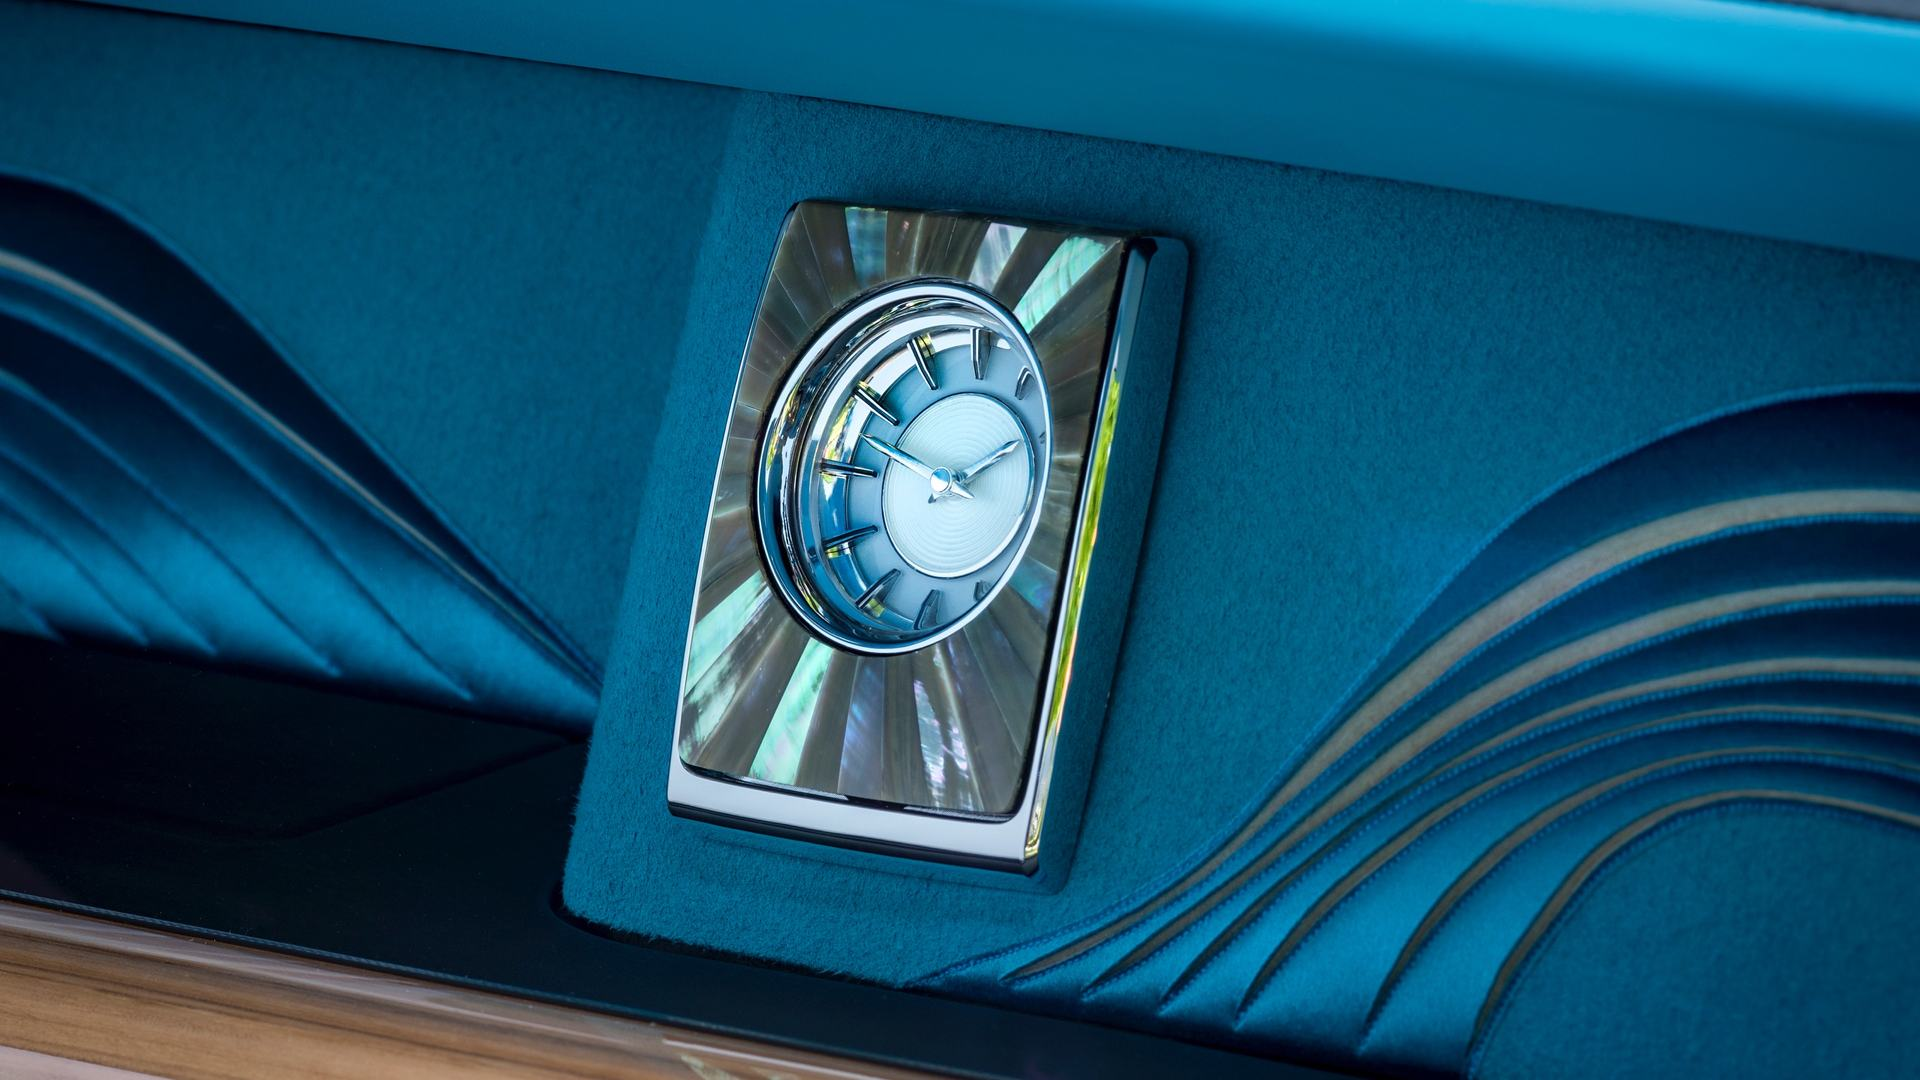 The gallery clock of a bespoke Rolls-Royce Phantom motor car